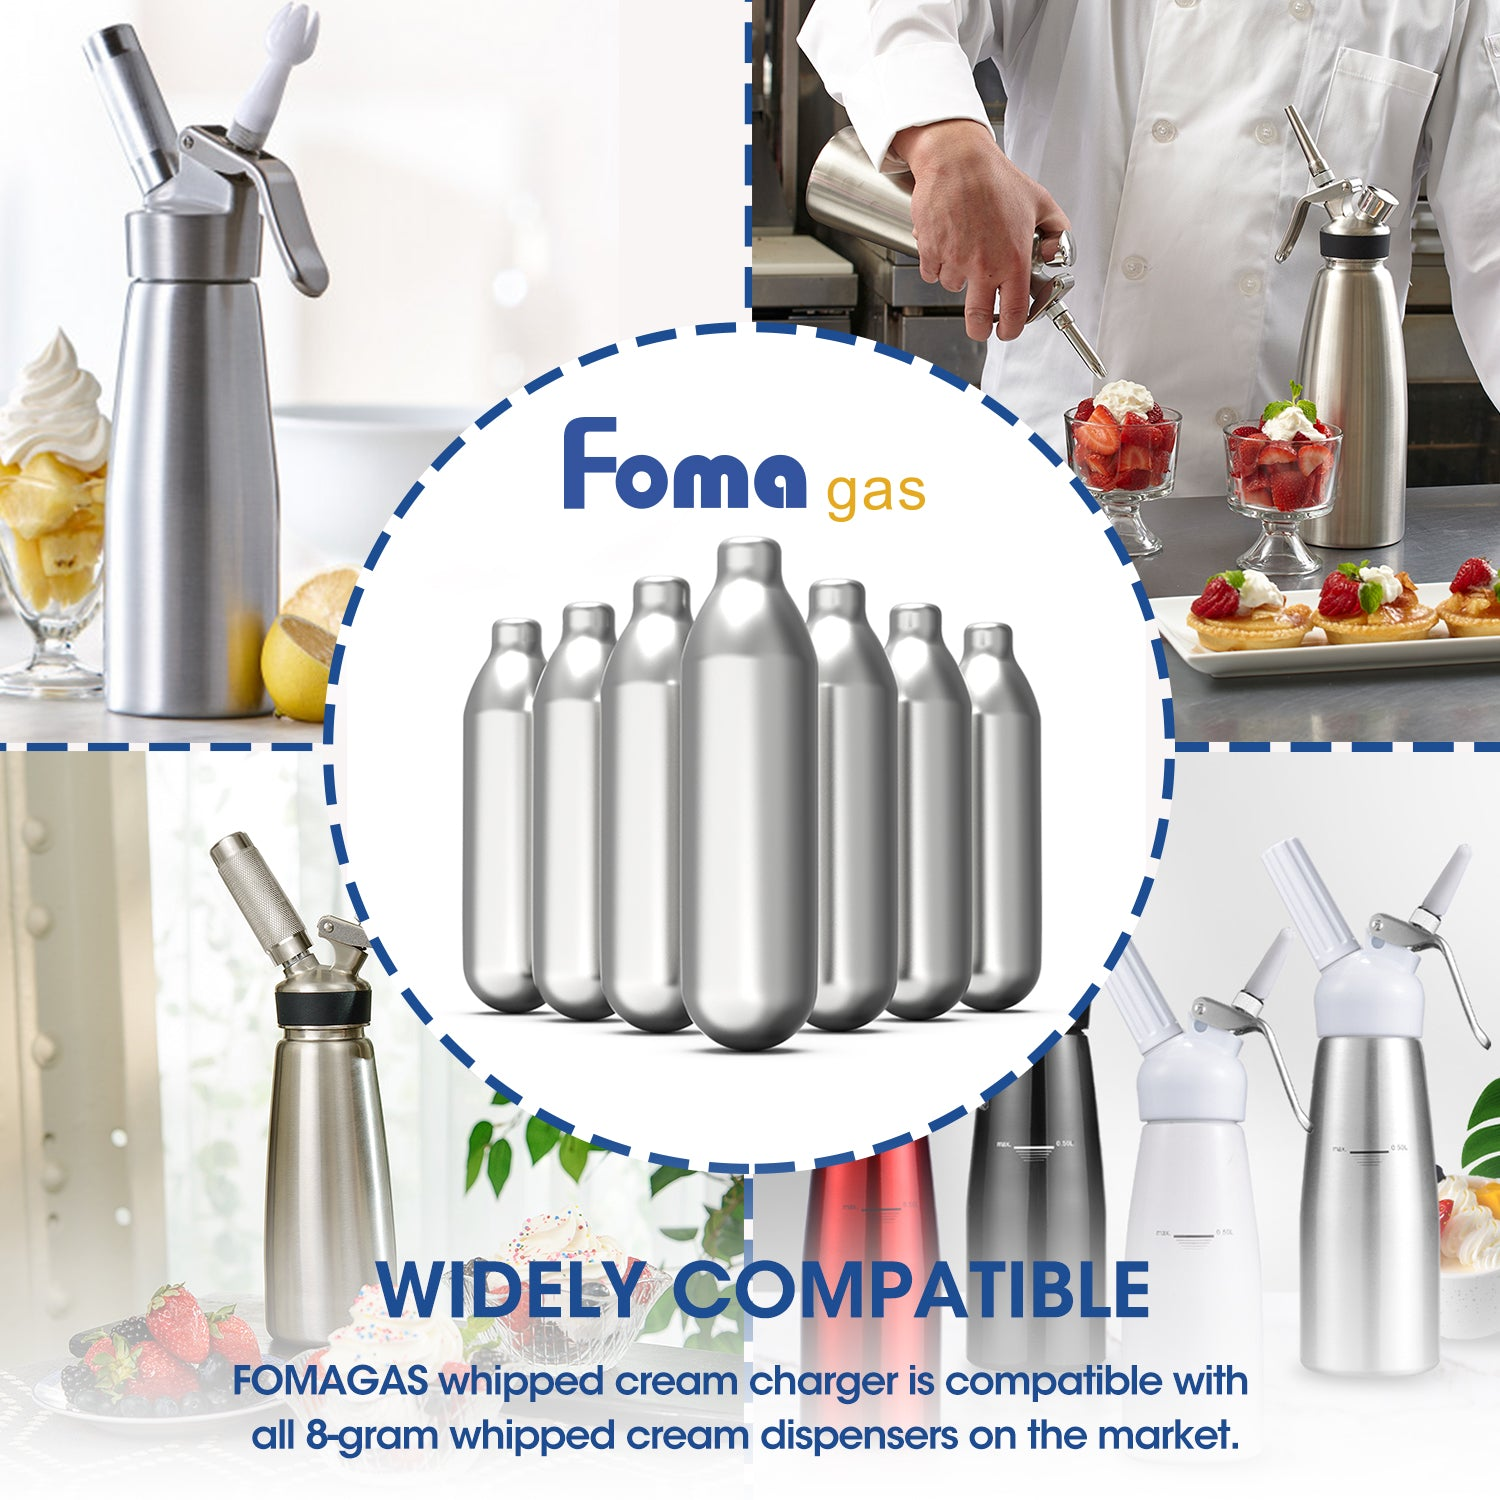 FomaGas 8g N2O Whipped Cream Chargers 600 Packs